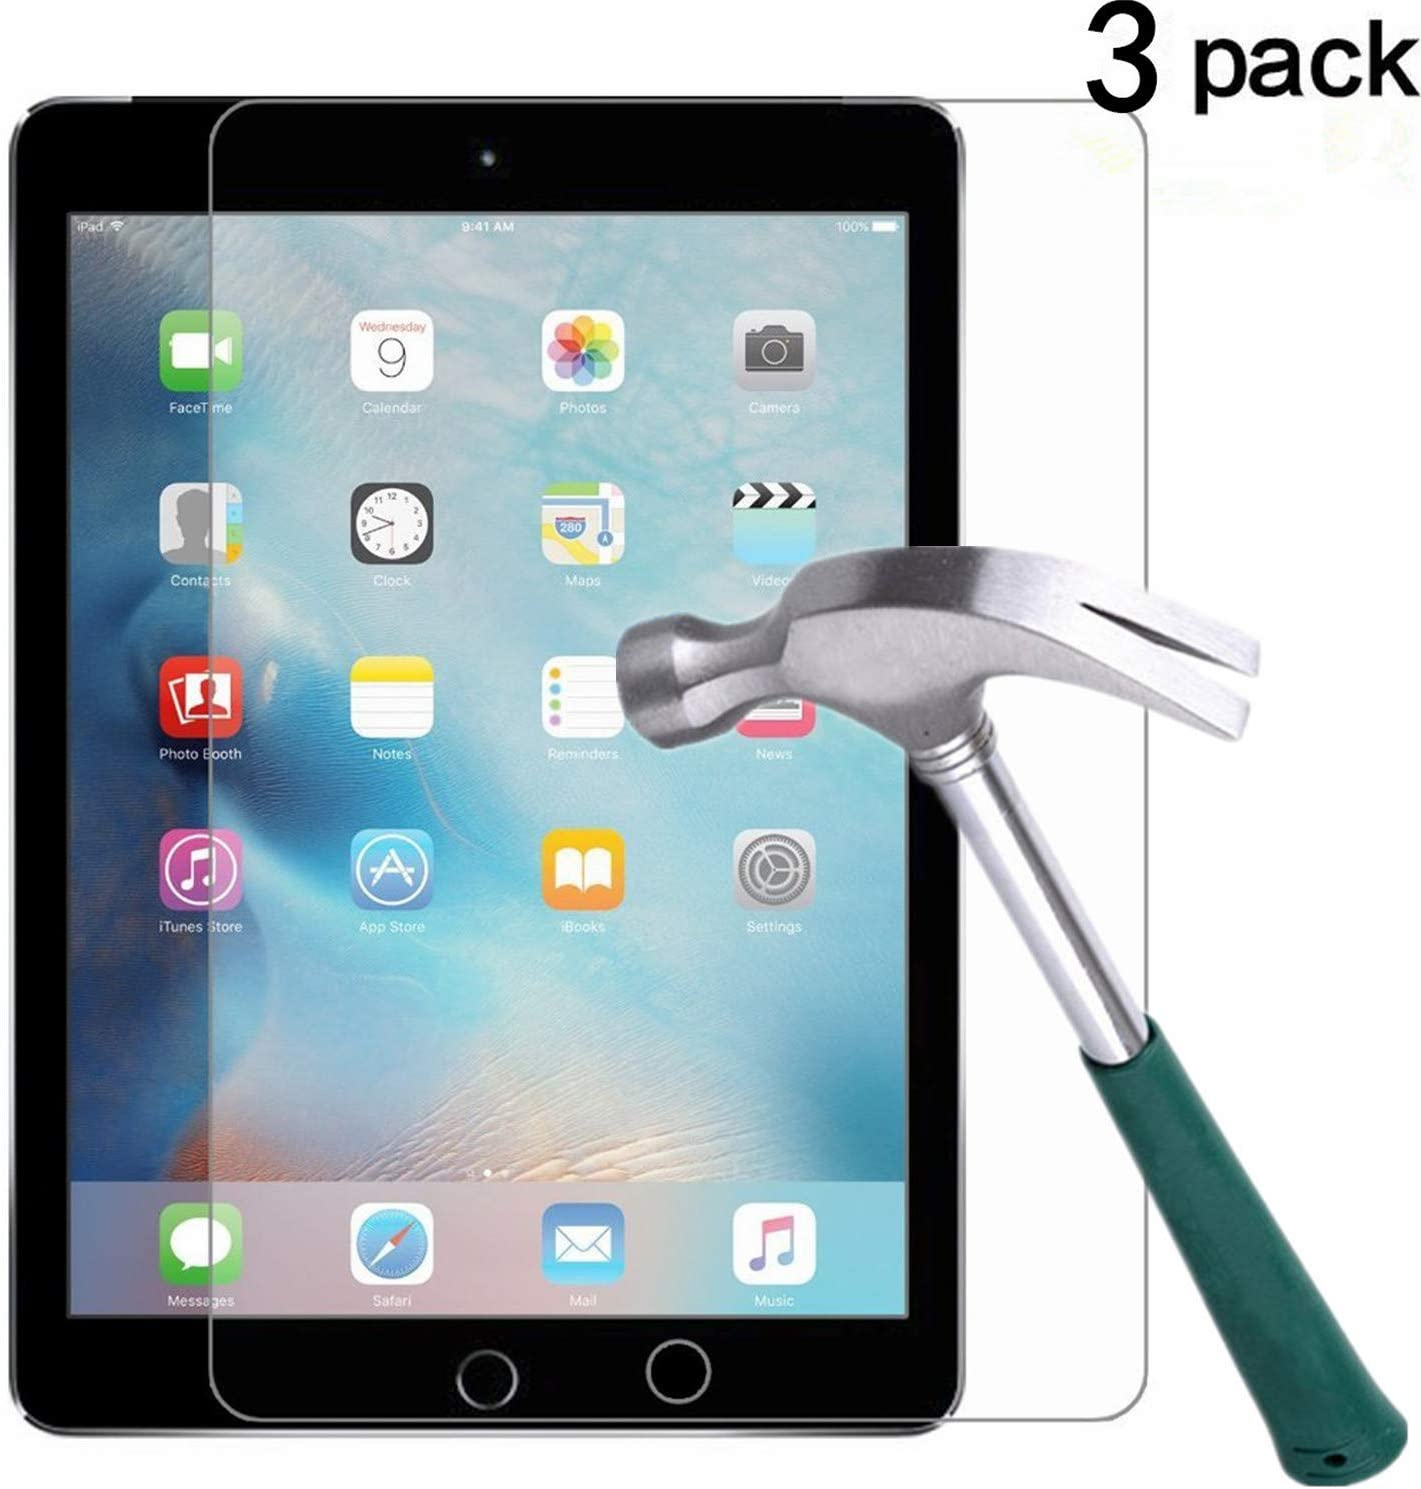 New iPad Pro 12.9 (2017) / iPad Pro 12.9 Screen Protector [3-Pack],TANTEK Tempered Glass/Bubble-Free/Anti-Scratch Screen Protector For 12.9-inch iPad Pro (2015/2017 Model)